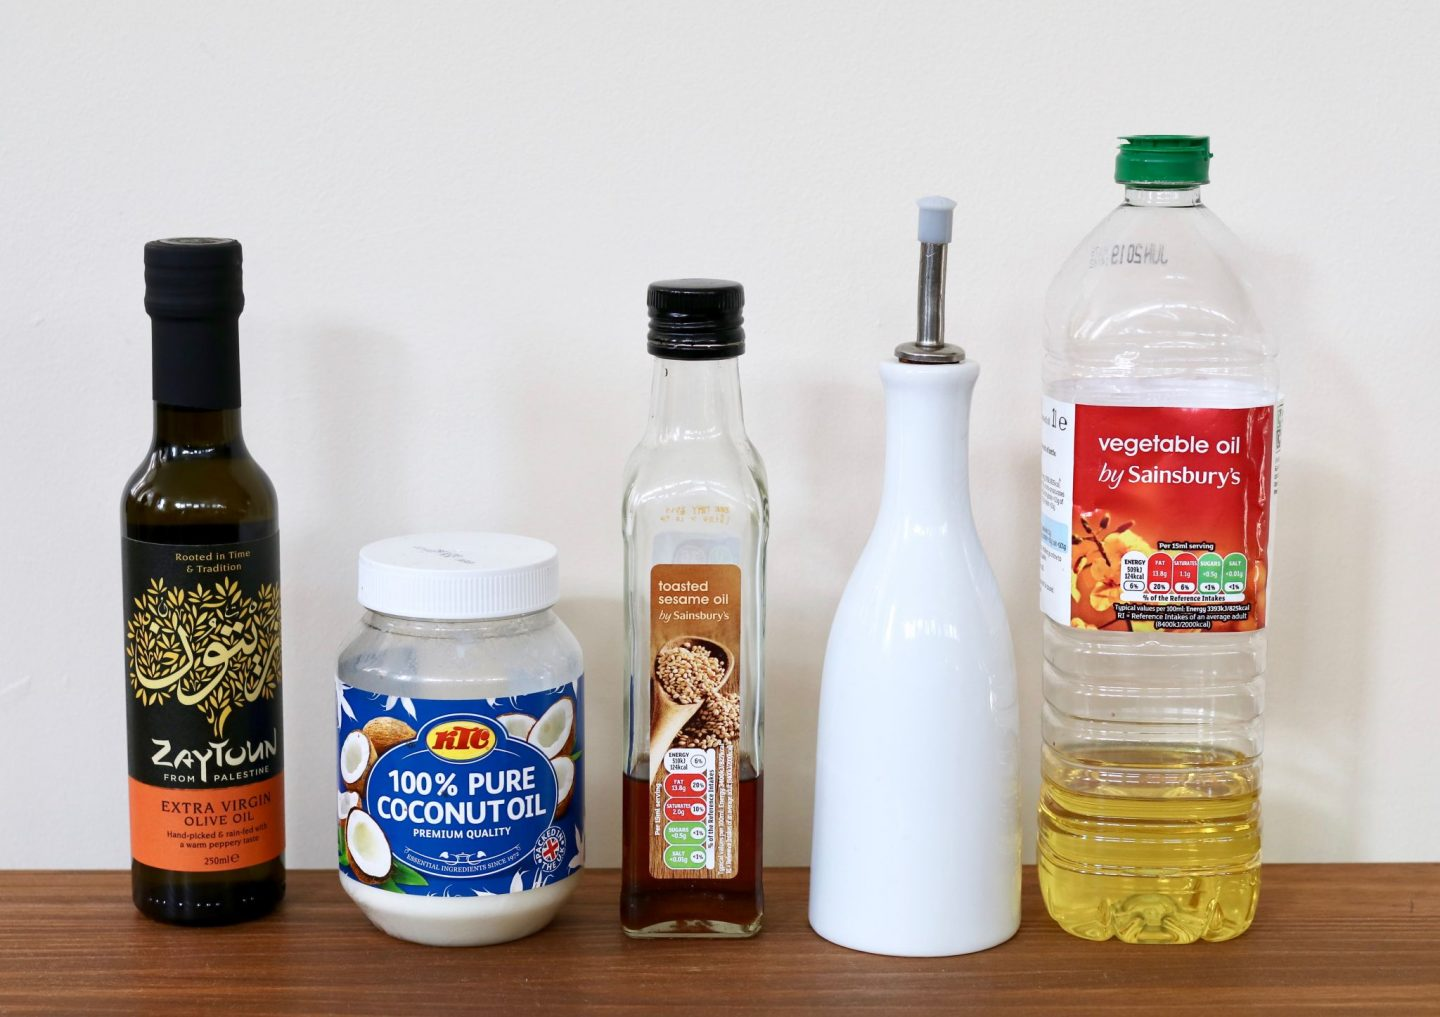 Vegan Kitchen basics #1: oils. Vegetable oil, olive oil, extra virgin olive oil, coconut oil, and sesame oil.